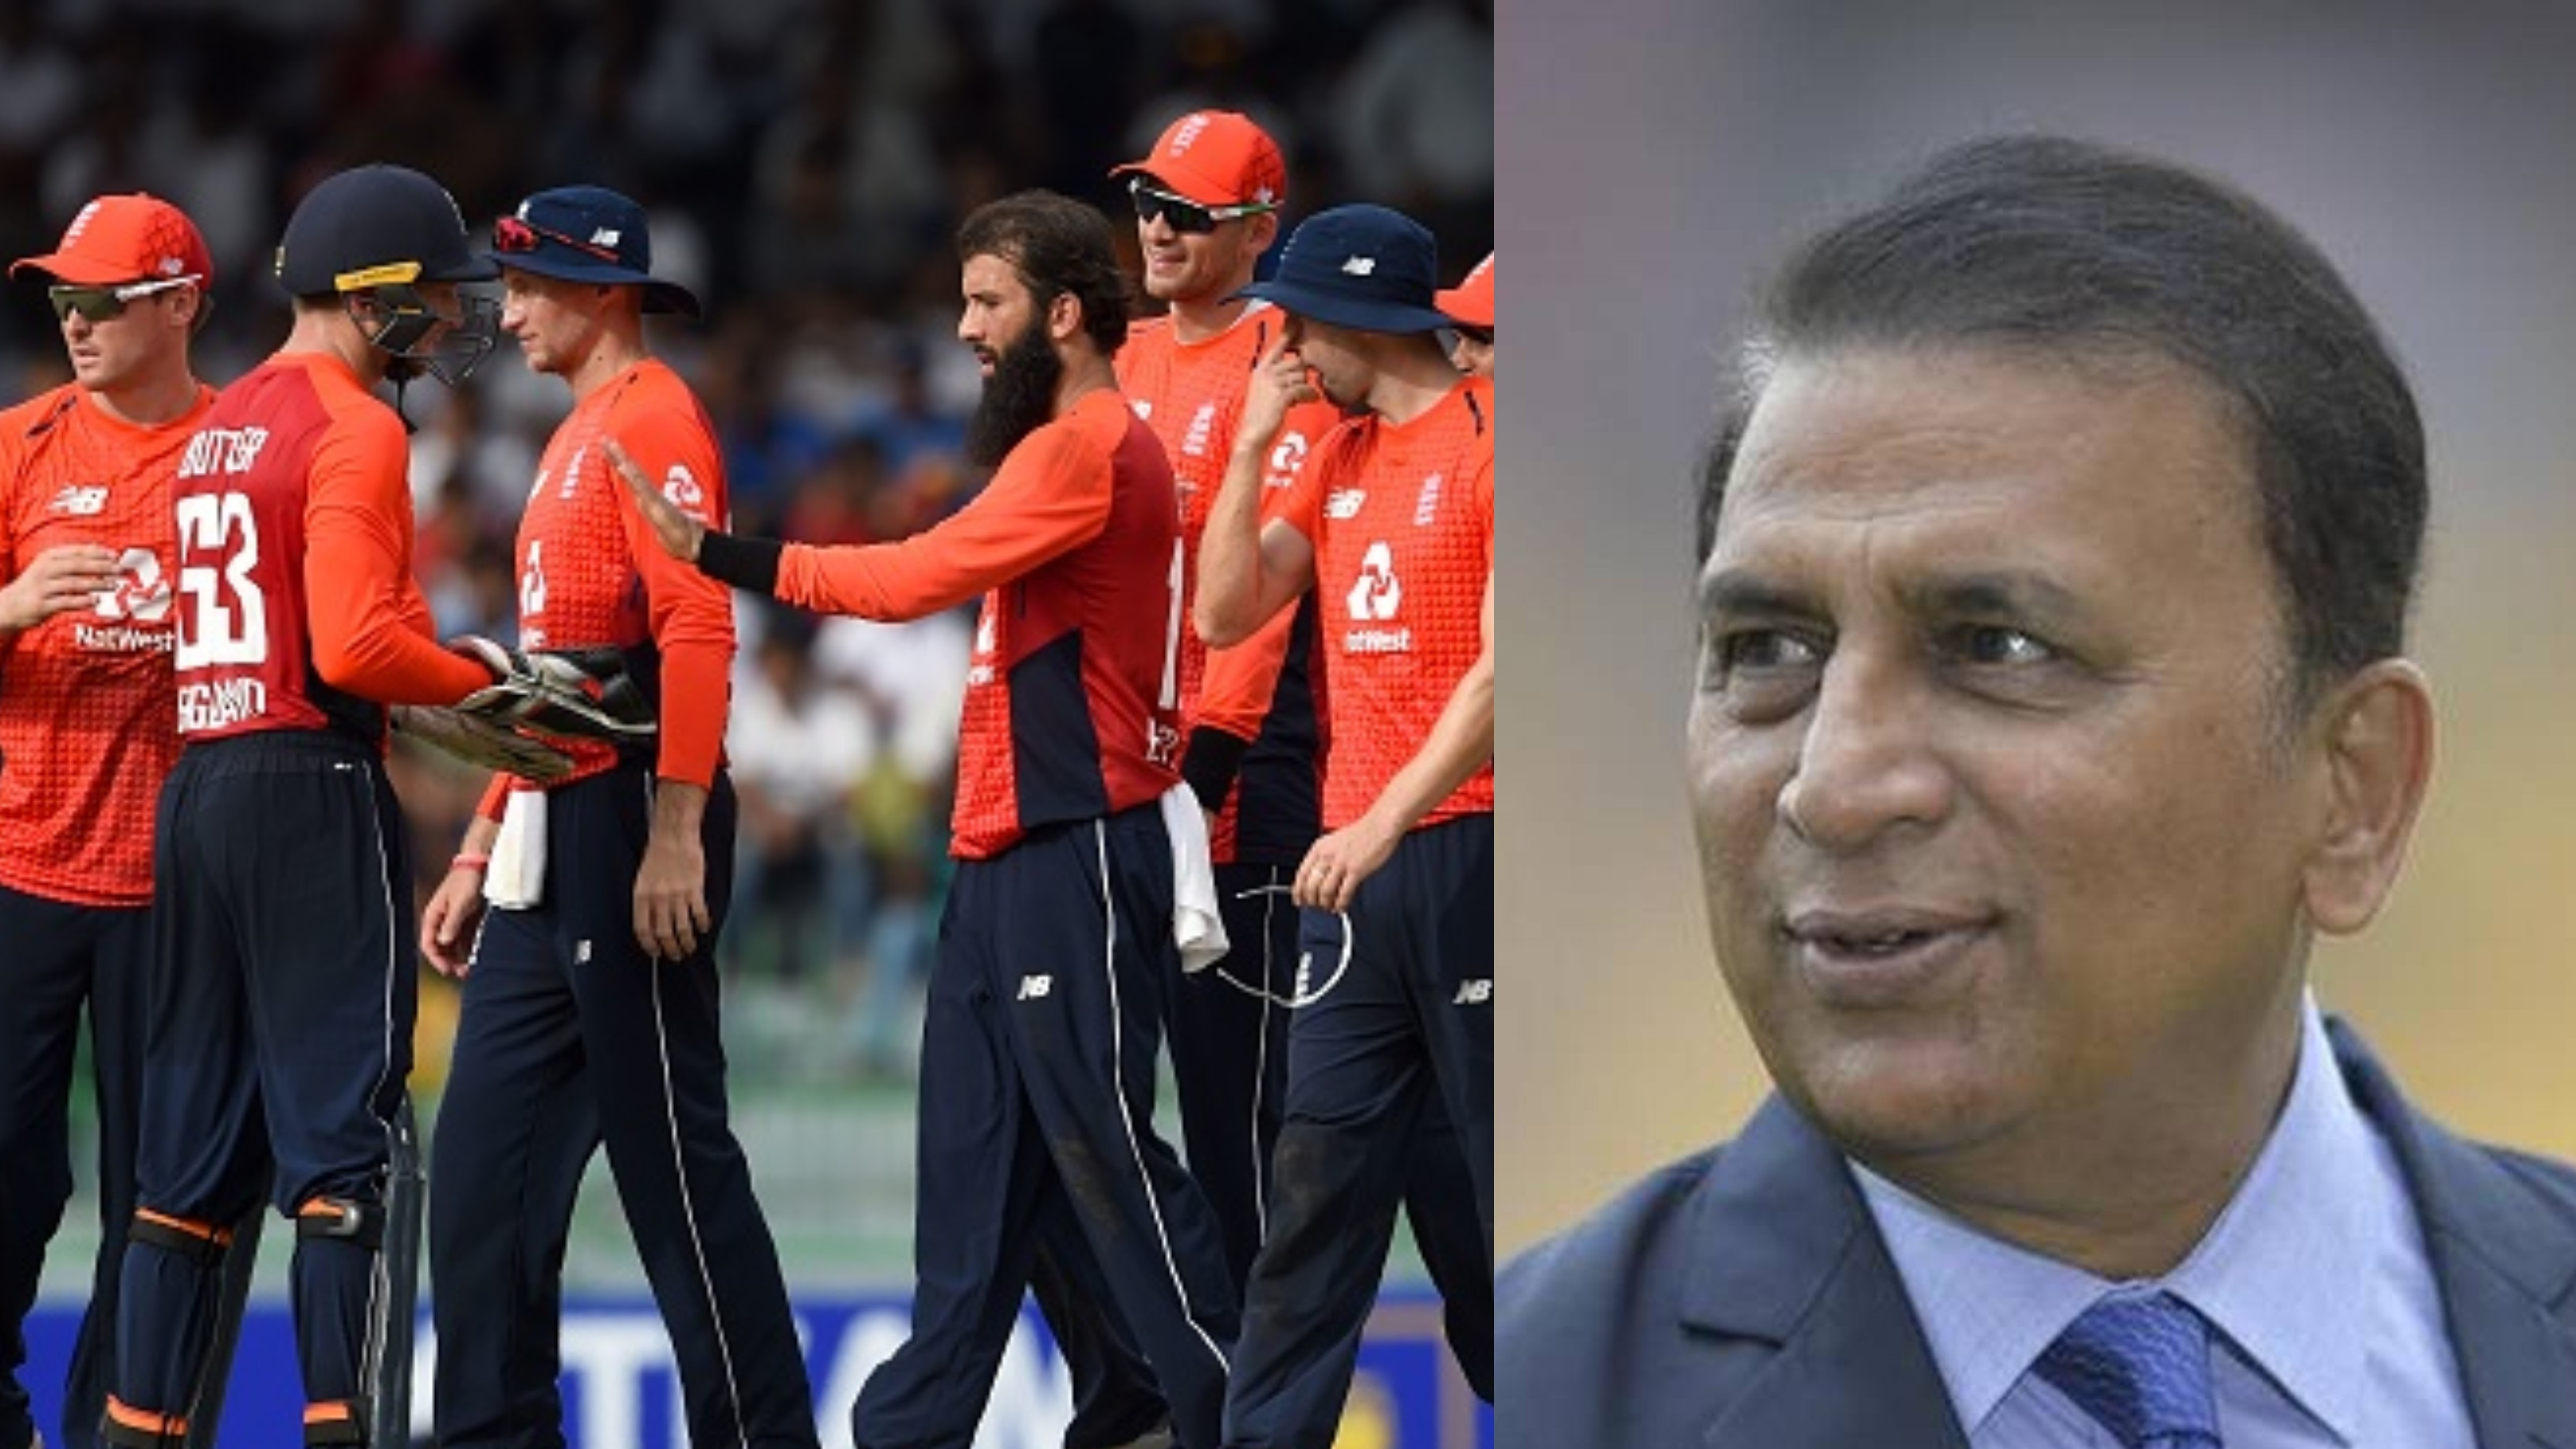 CWC 2019: Sunil Gavaskar explains why England is favorite for World Cup 2019 at home